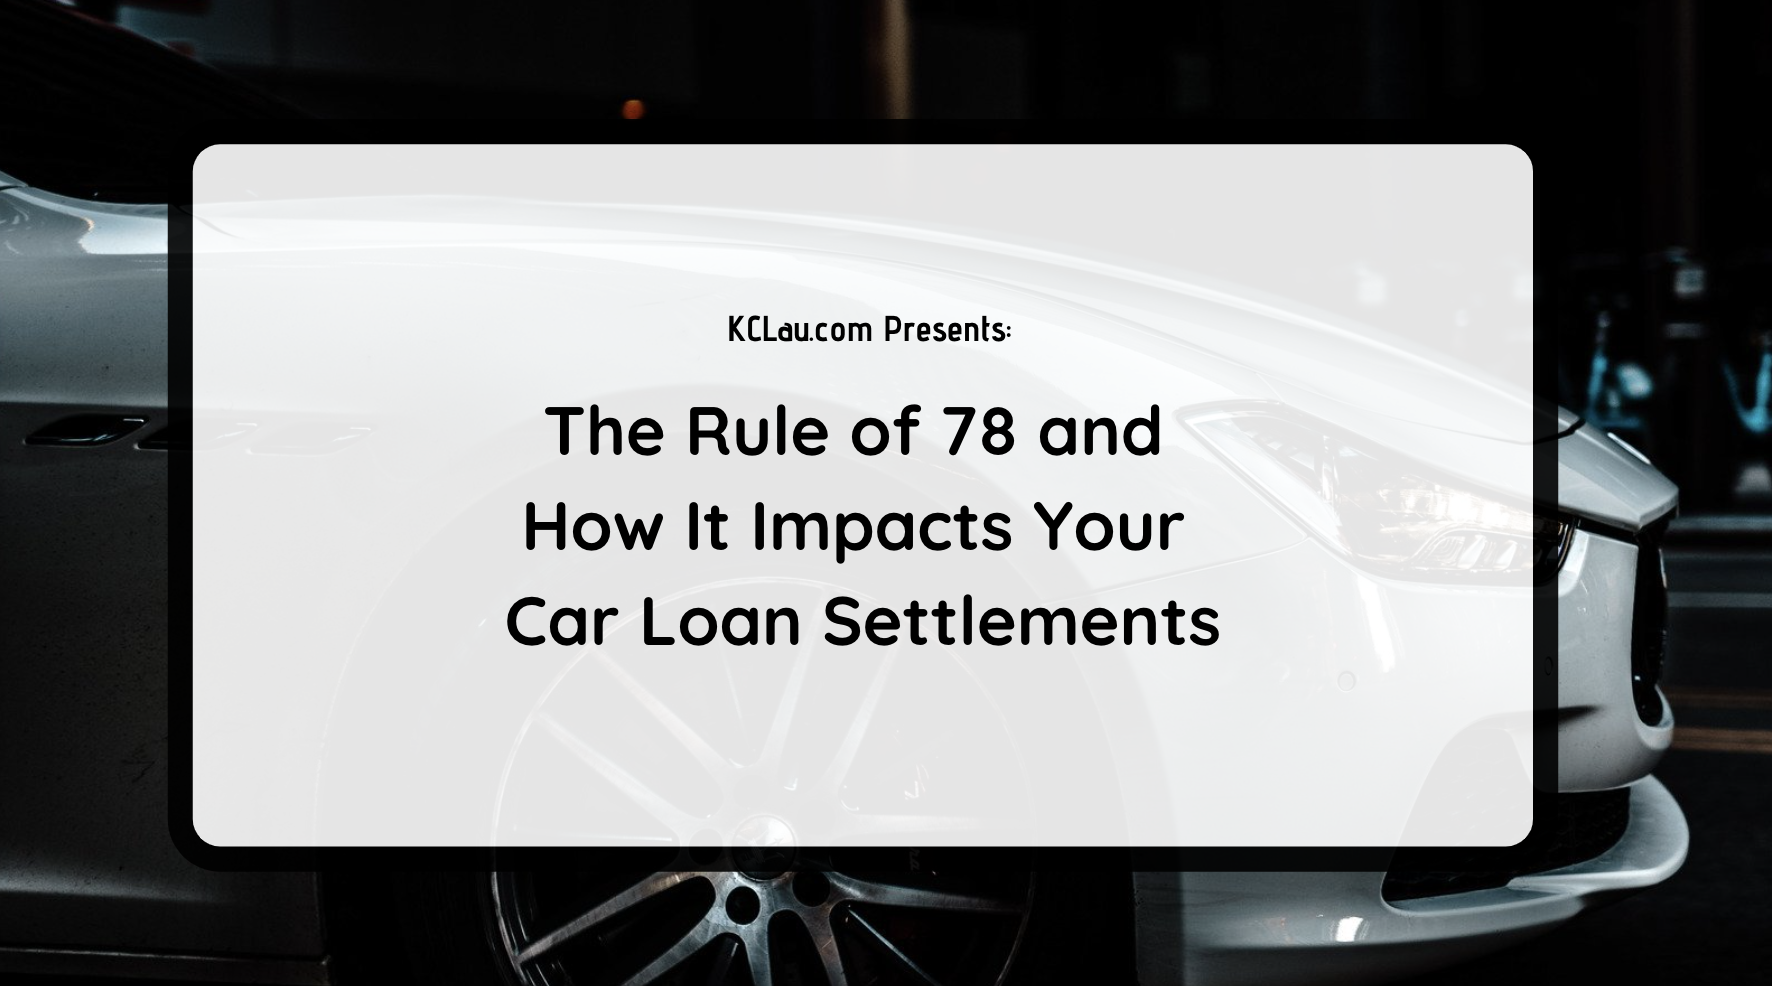 The Rule of 78 and How It Impacts Your Car Loan Settlements